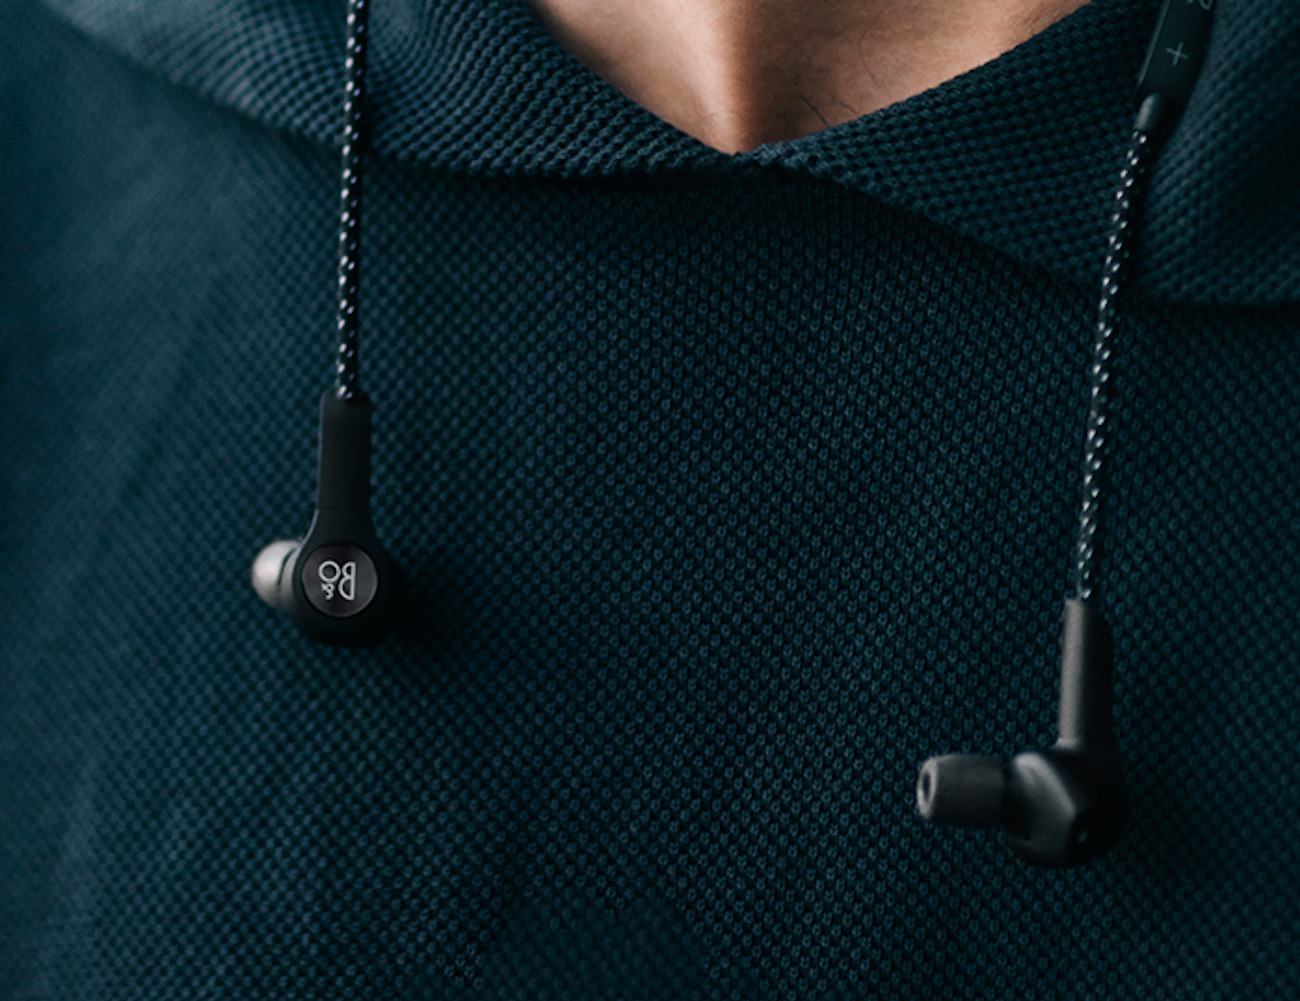 Beoplay H5 Wireless Earphones by Bang & Olufsen